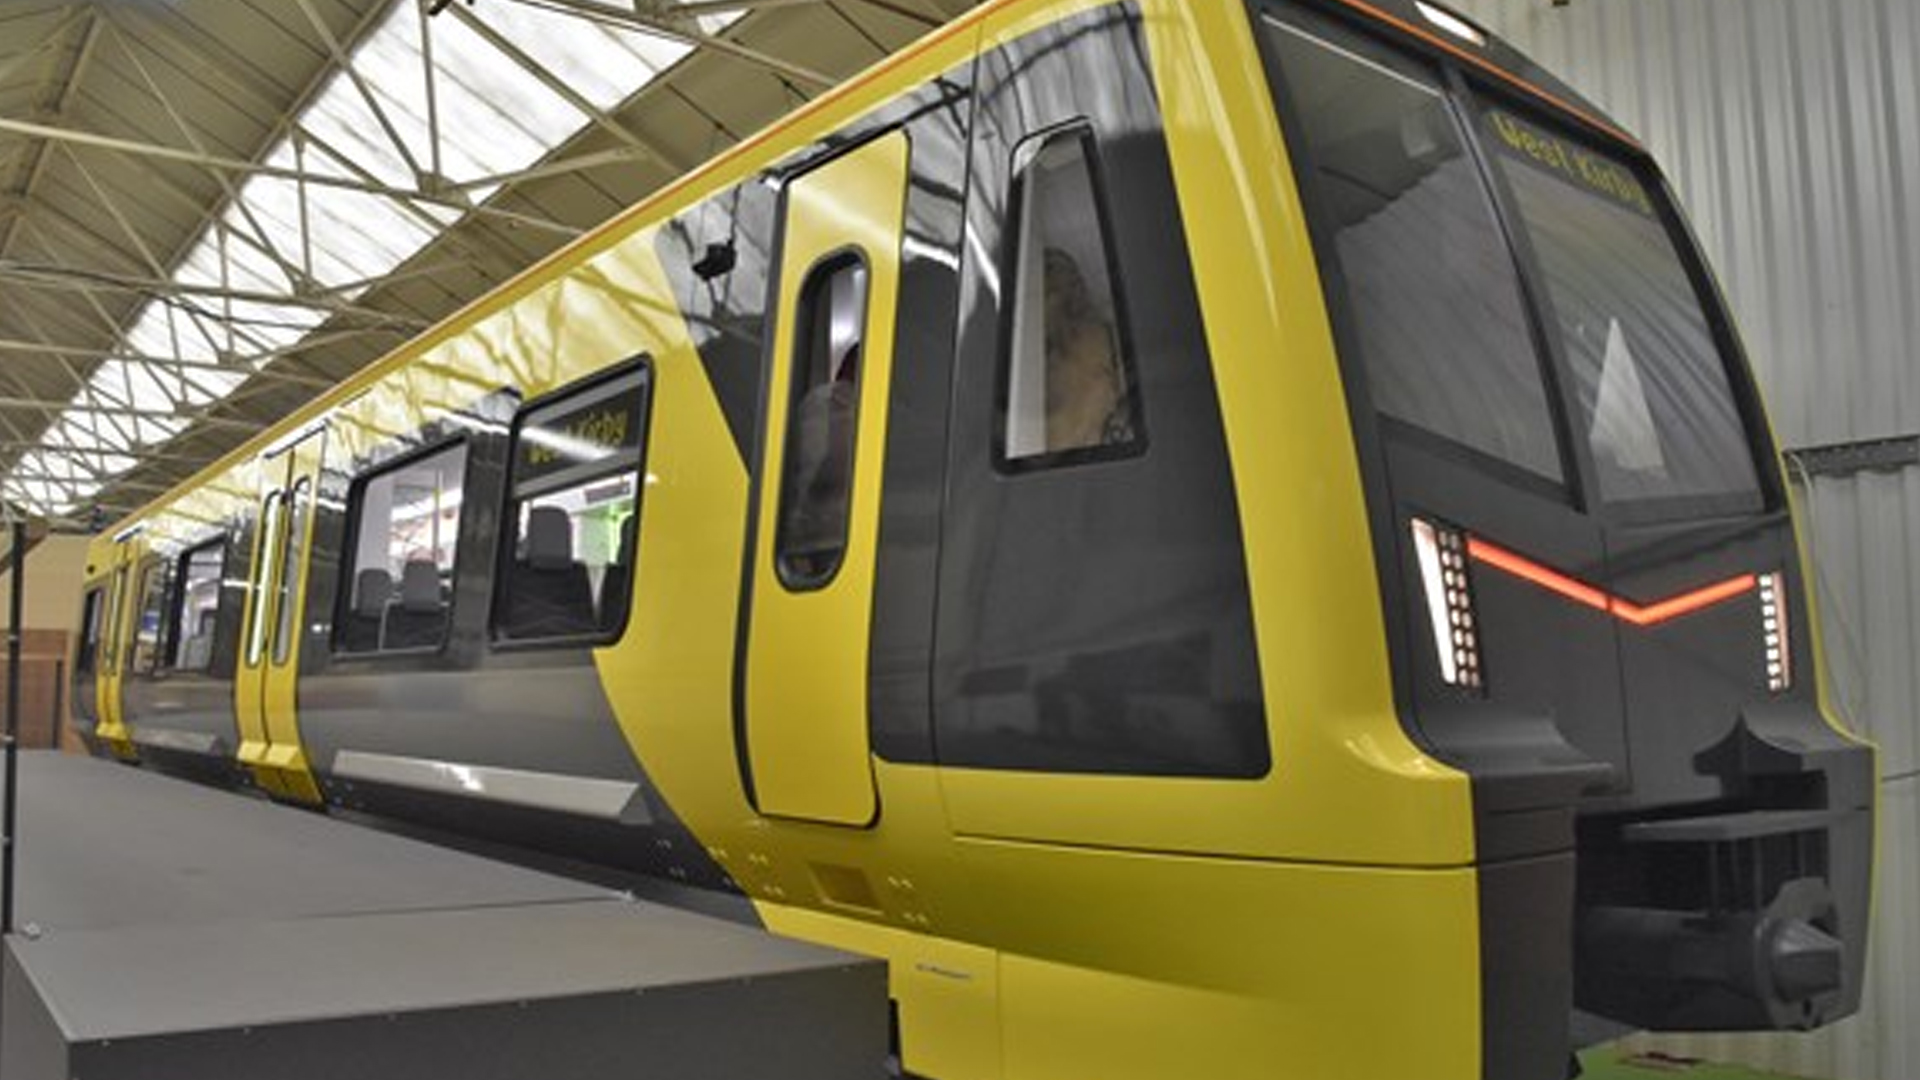 Get A First Look Full Size Replica Of New Merseyrail